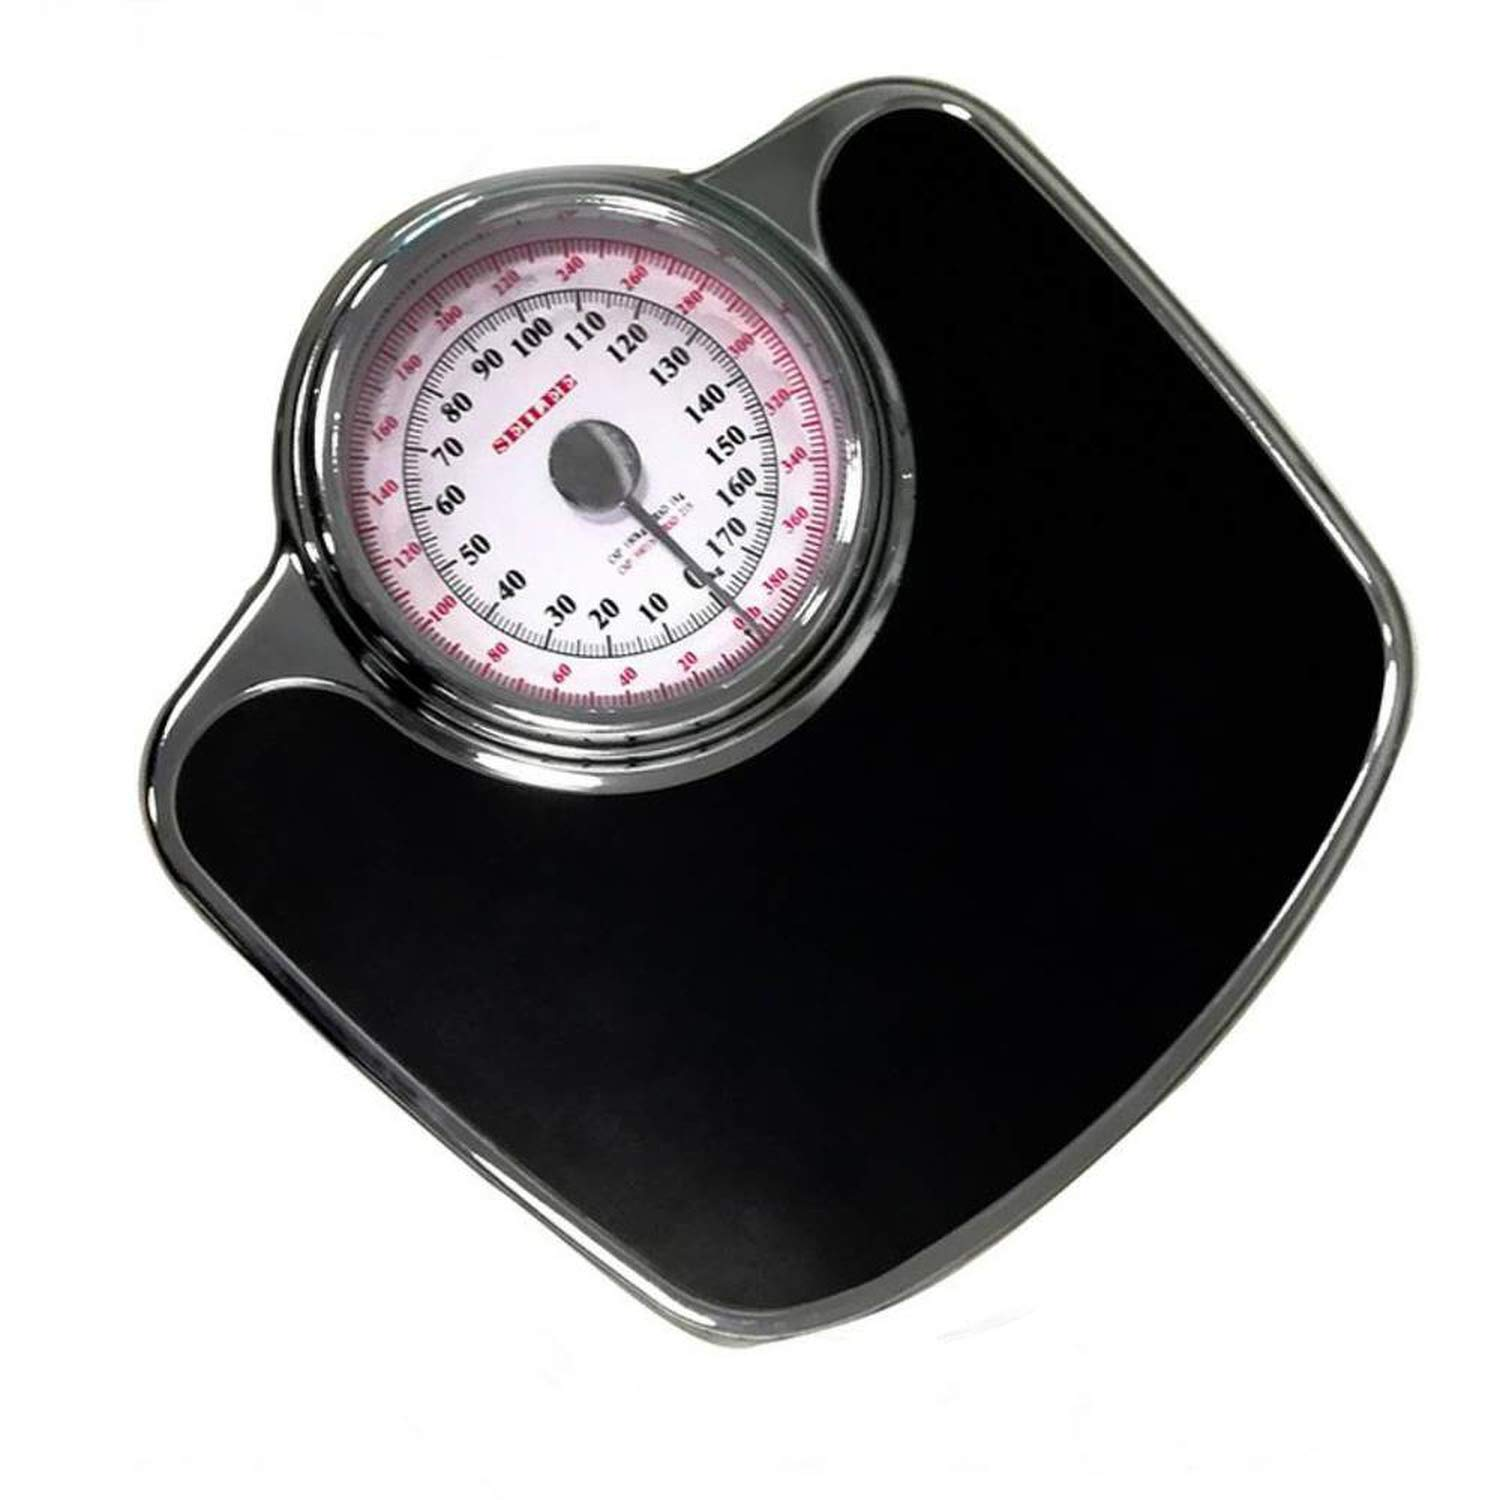 Bathroom Scales New Hotel Hotel Room Pointer Human Scale Mechanical Bathroom Scale Human Health Scale 3,Black